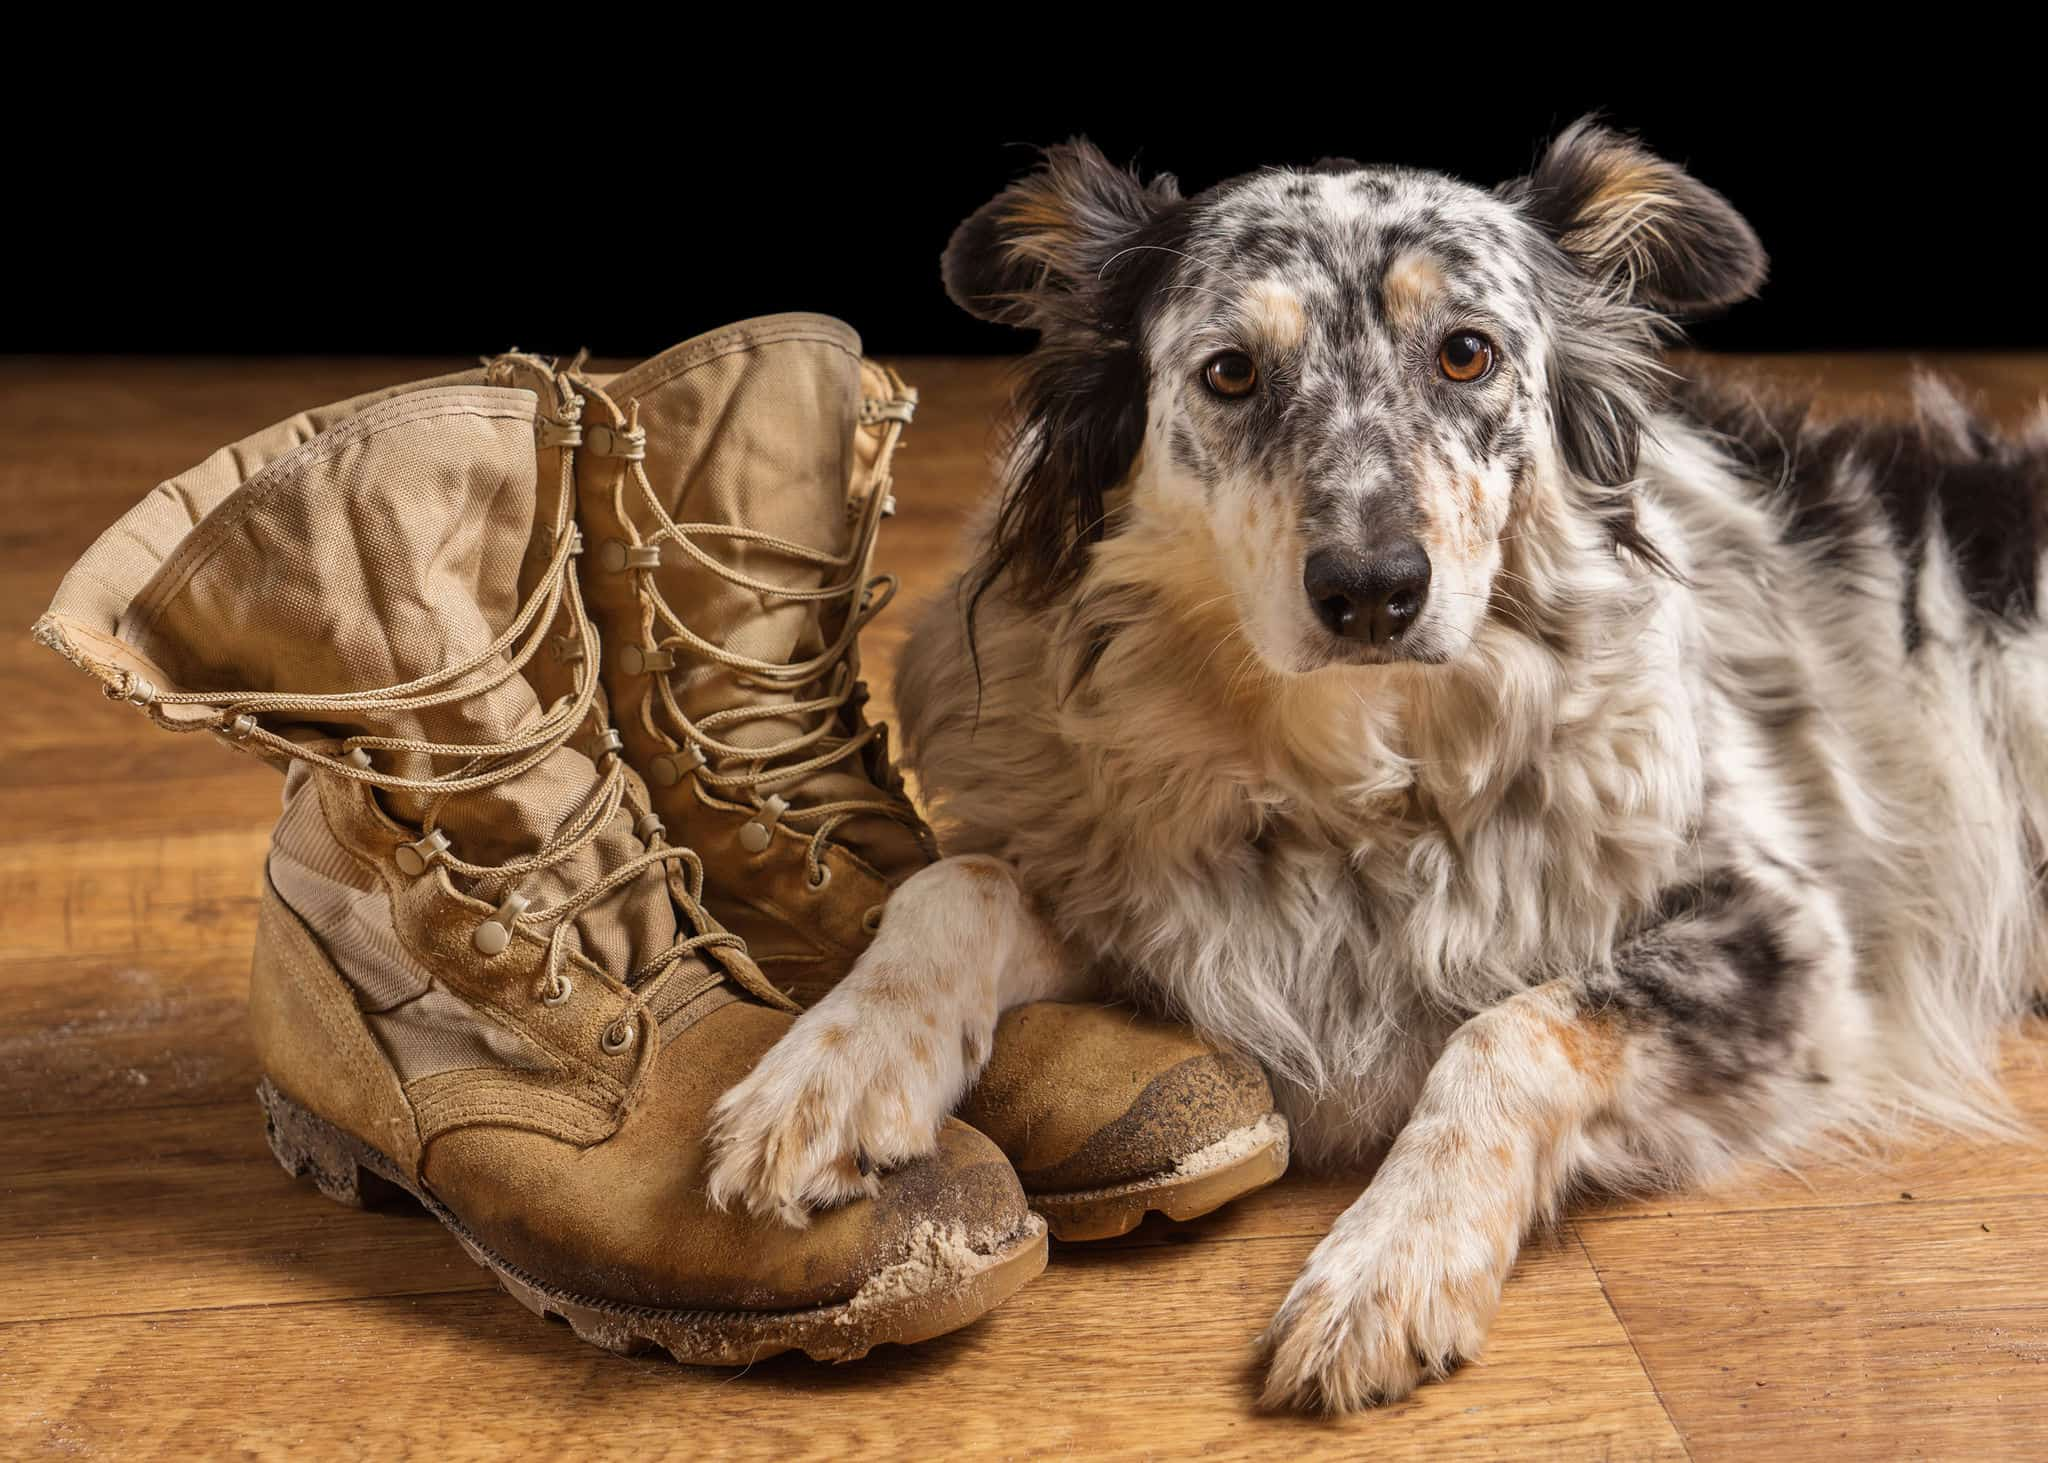 Border collie Australian shepherd mix dog lying down on tan veteran service military combat boots looking sad